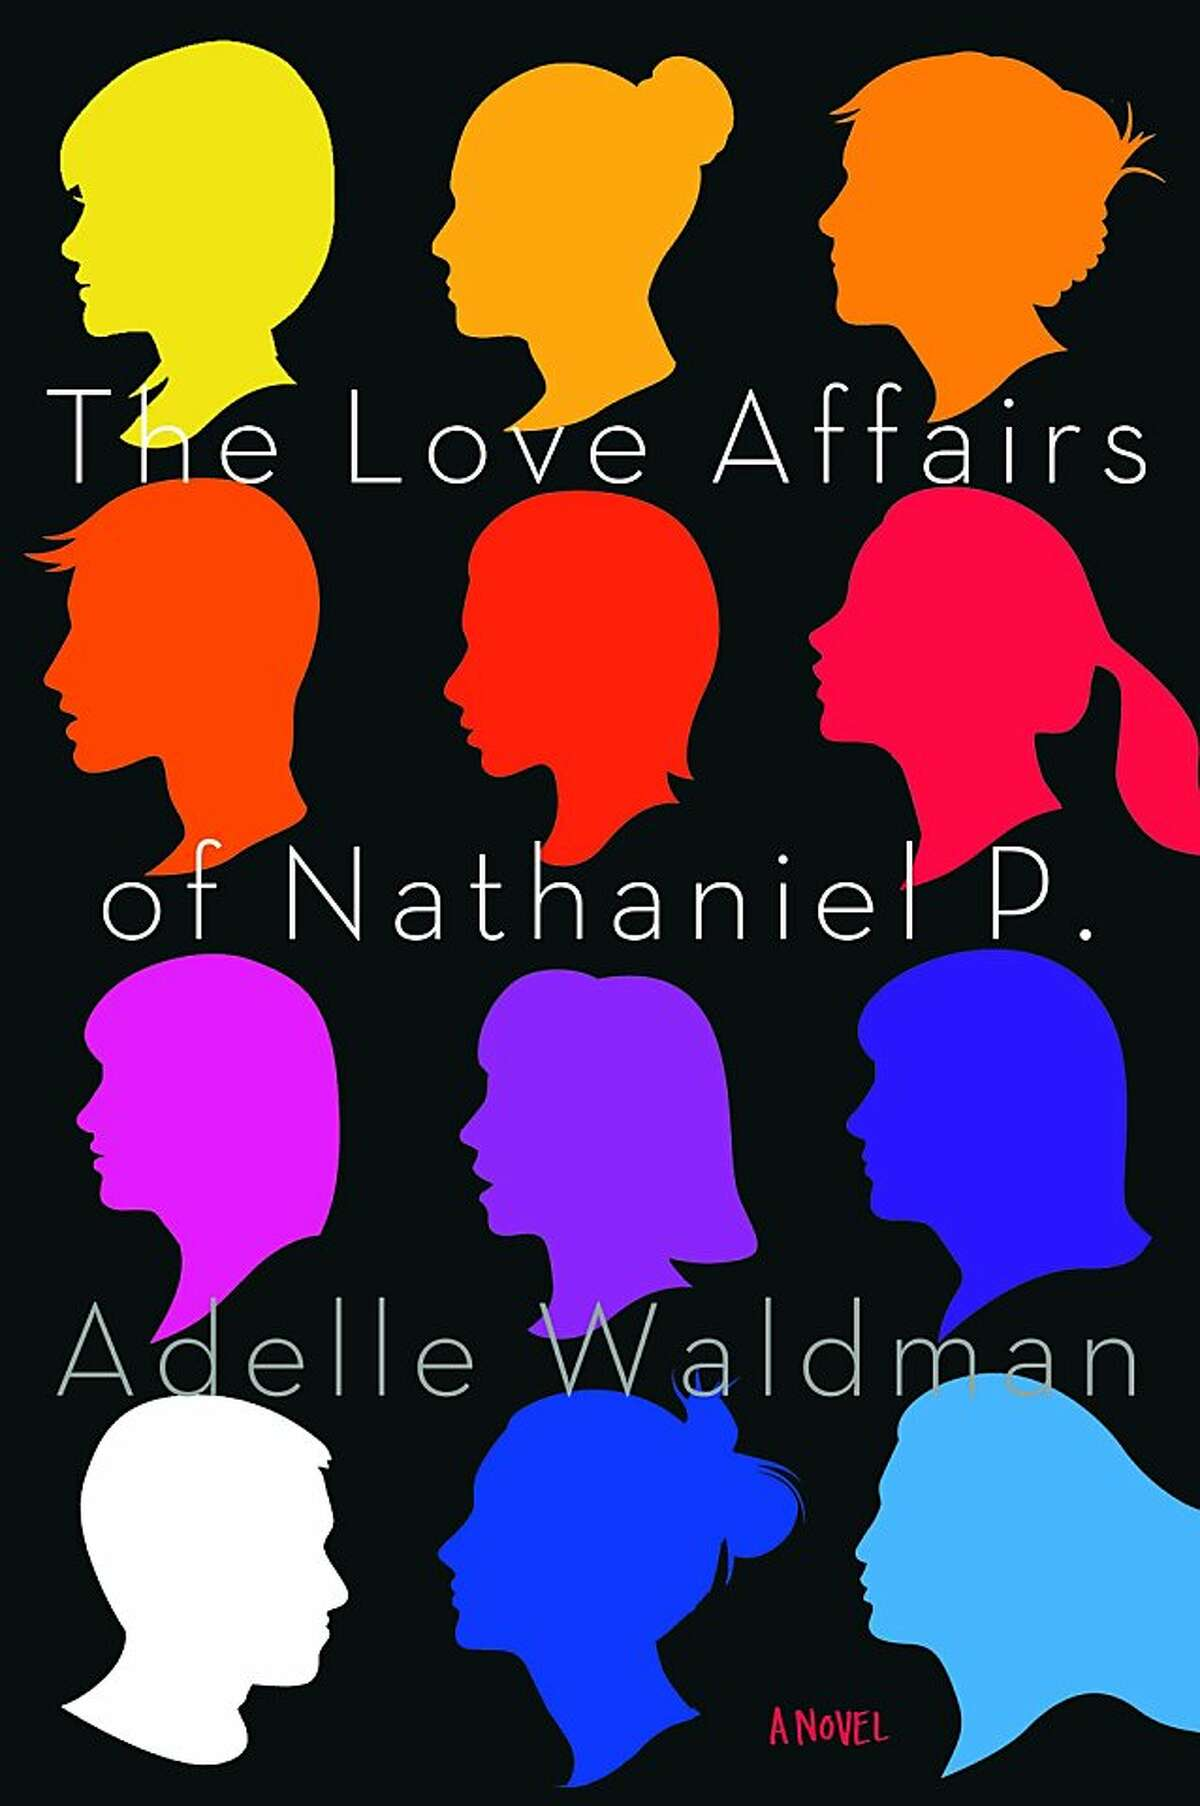 The Love Affairs of Nathaniel P., by Adelle Waldman